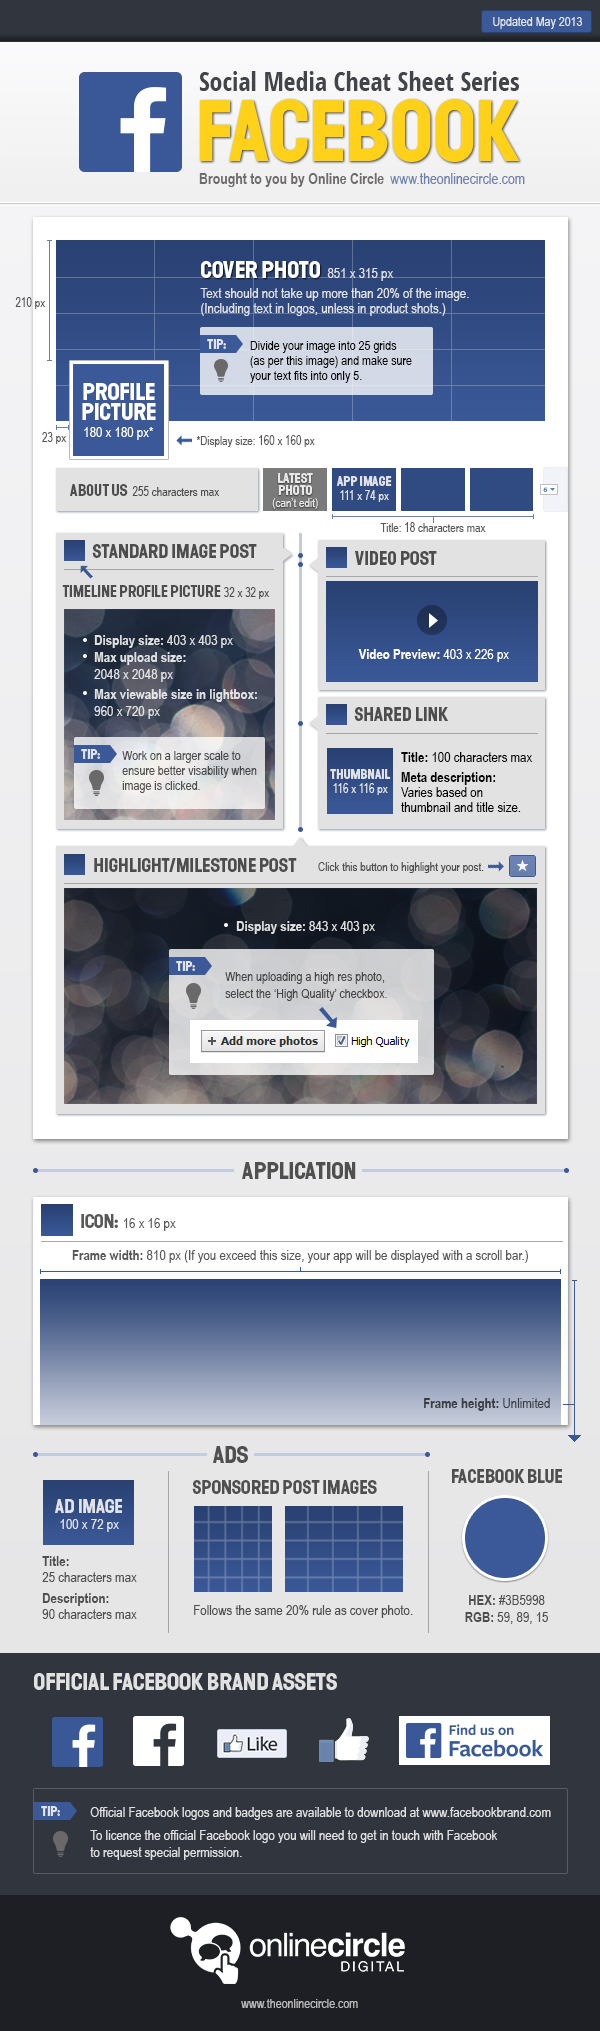 OnlineCircle.com Facebook Dimensions Cheat Sheet